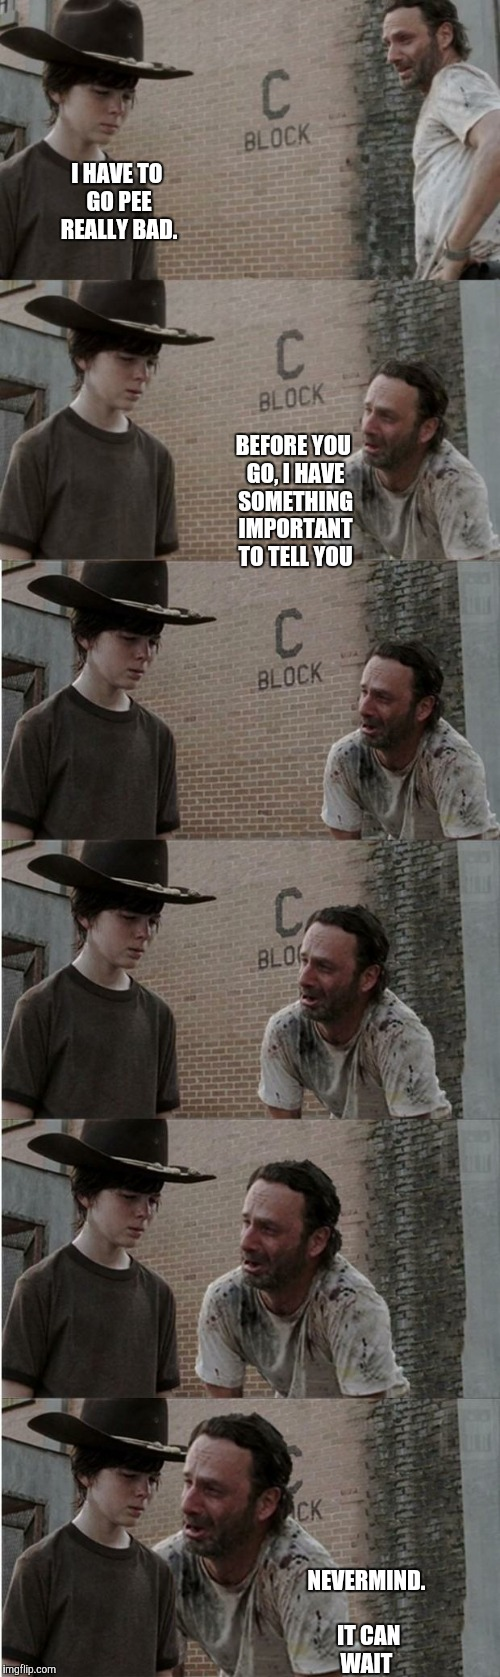 Rick and Carl Longer Meme | I HAVE TO GO PEE REALLY BAD. NEVERMIND. IT CAN WAIT BEFORE YOU GO, I HAVE SOMETHING IMPORTANT TO TELL YOU | image tagged in memes,rick and carl longer | made w/ Imgflip meme maker